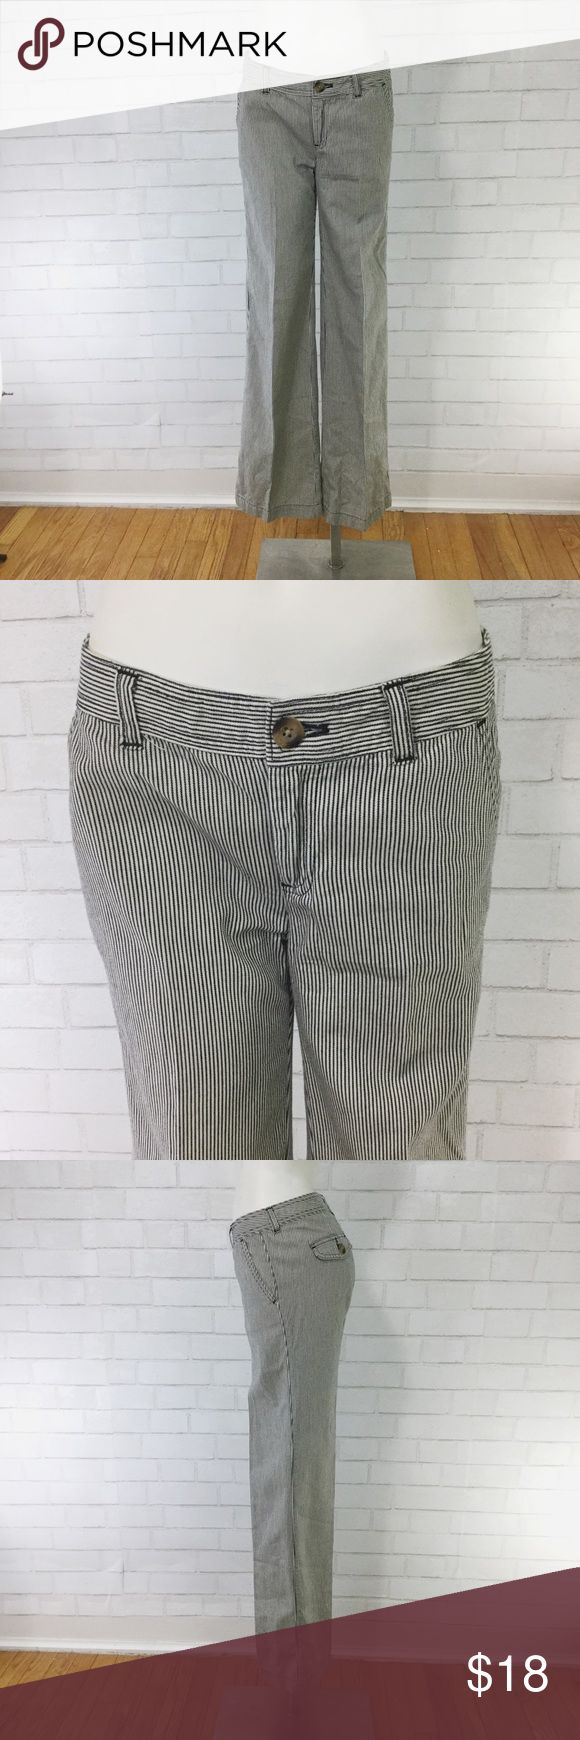 """Gap Engineers Trousers Nautical Stripes Navy blue and white striped 100% cotton dress pants. Waist= 14.5"""" Hips= 17"""" Rise= 8"""" Inseam= 32"""" GAP Pants"""